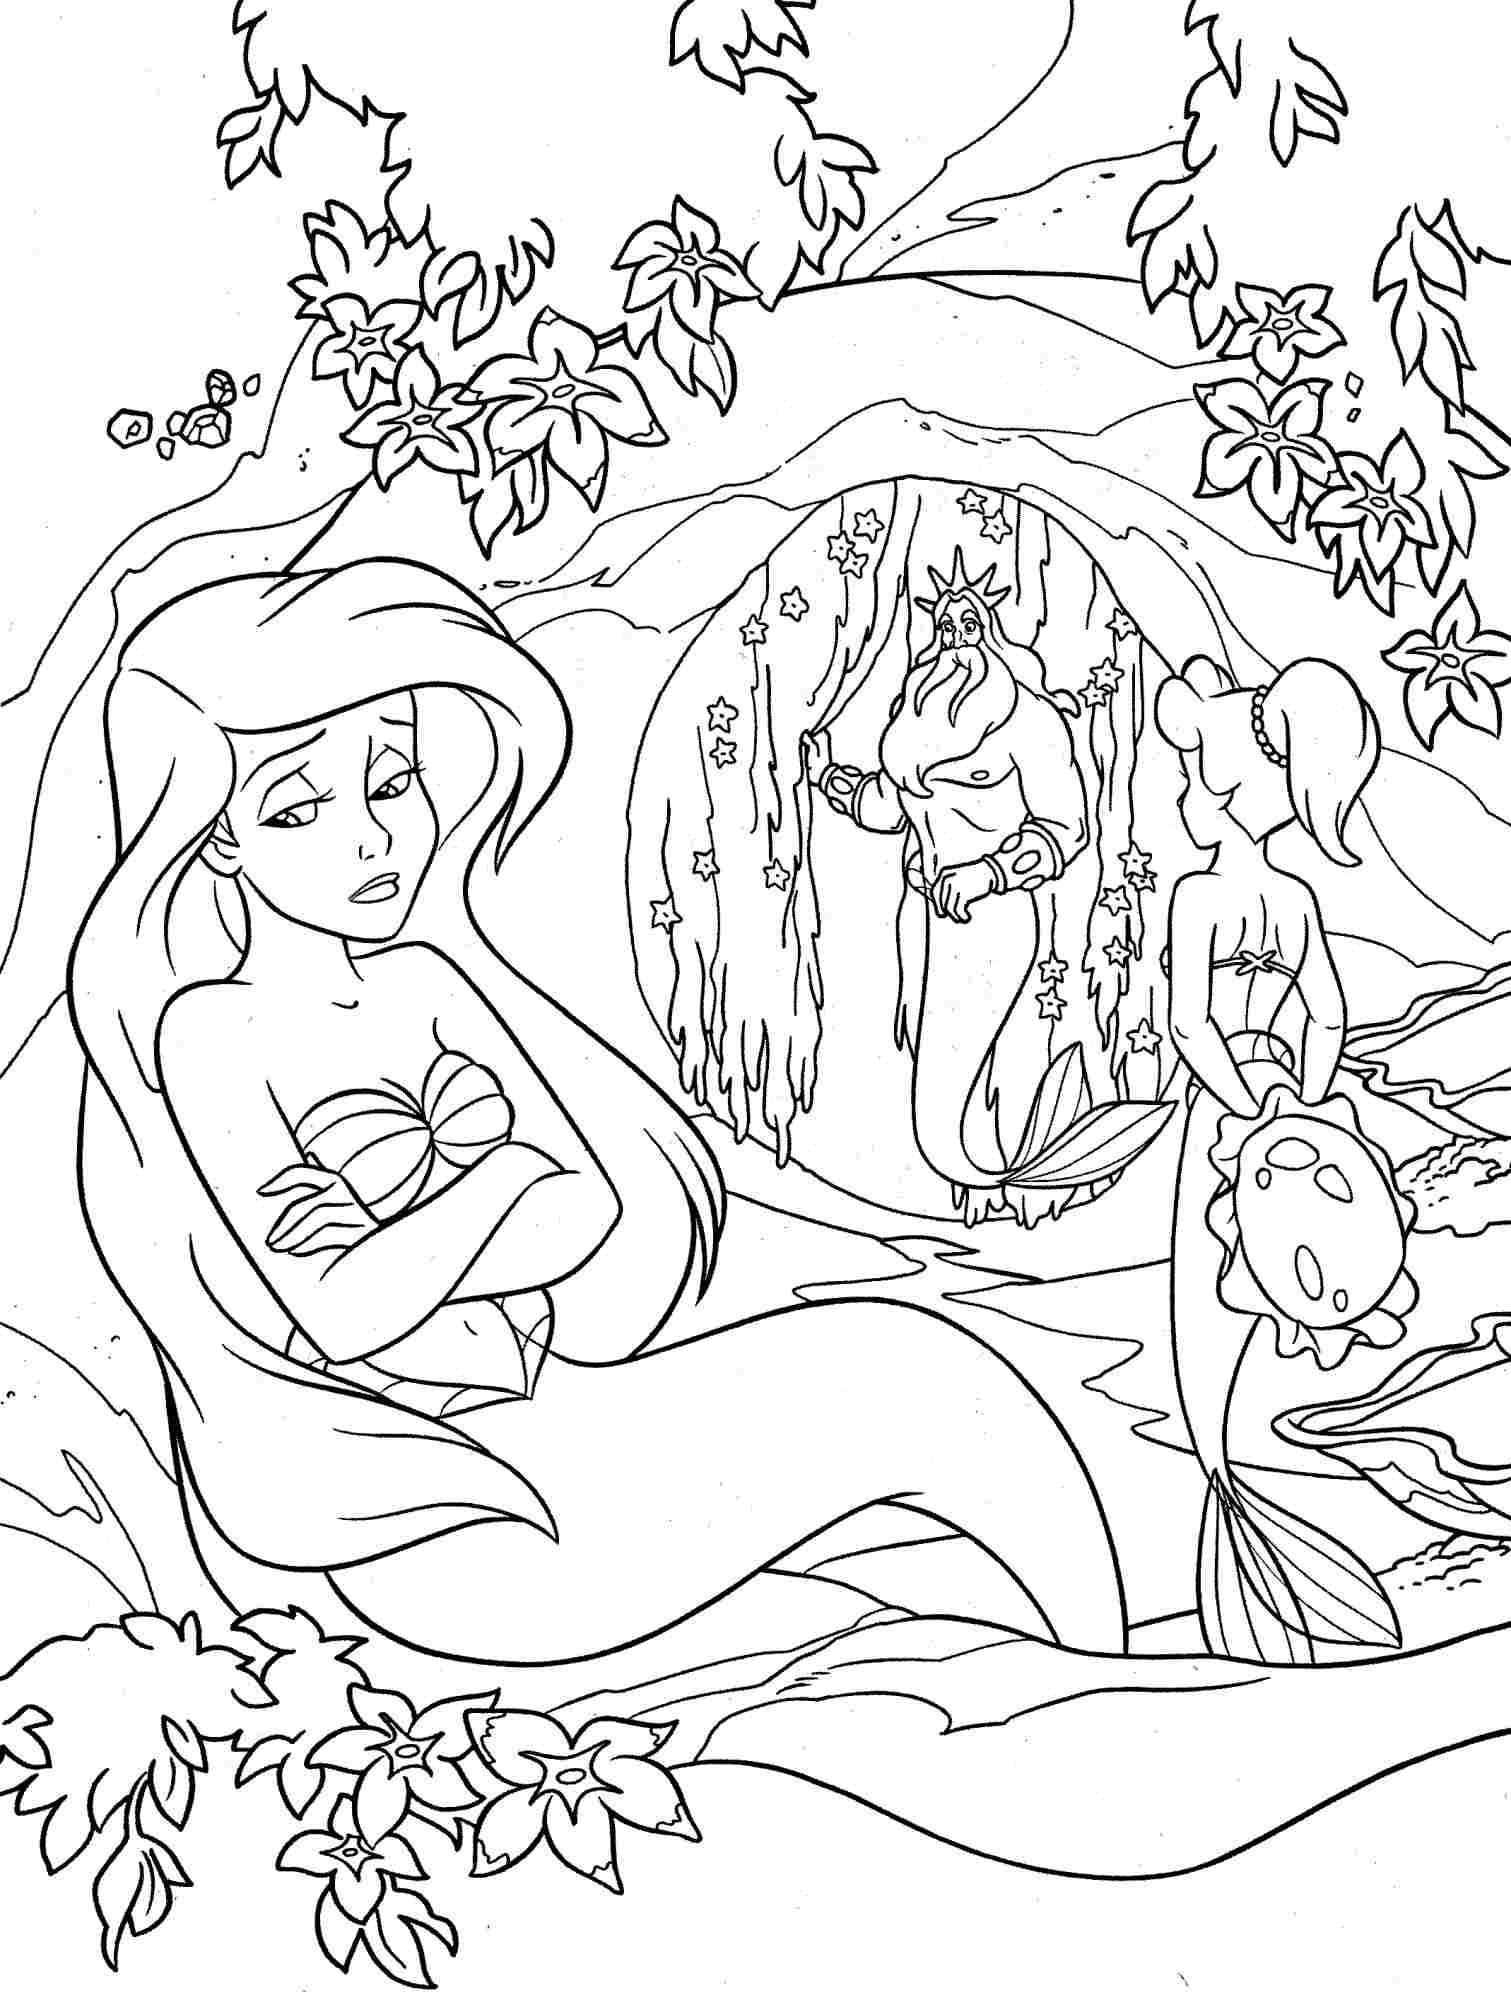 Mermaid Coloring Pages For Adults Pdf Pictures